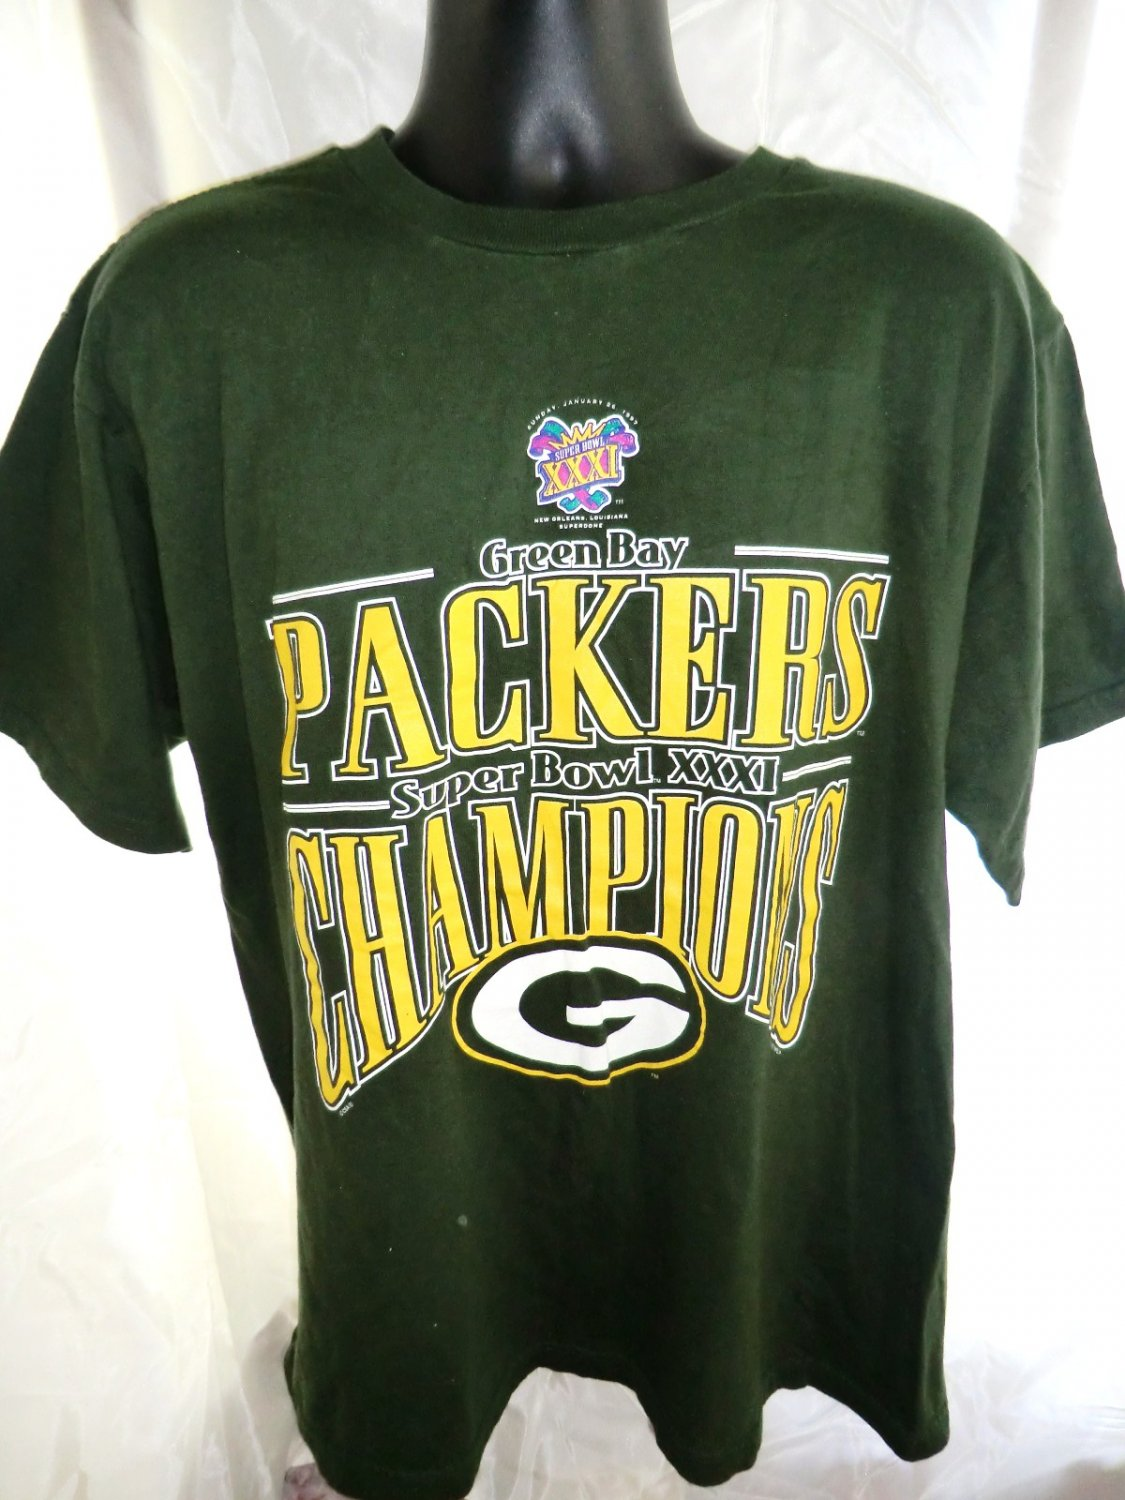 Green Bay Packers Super Bowl XXXI  Champions T-Shirt Size Large XL 1997